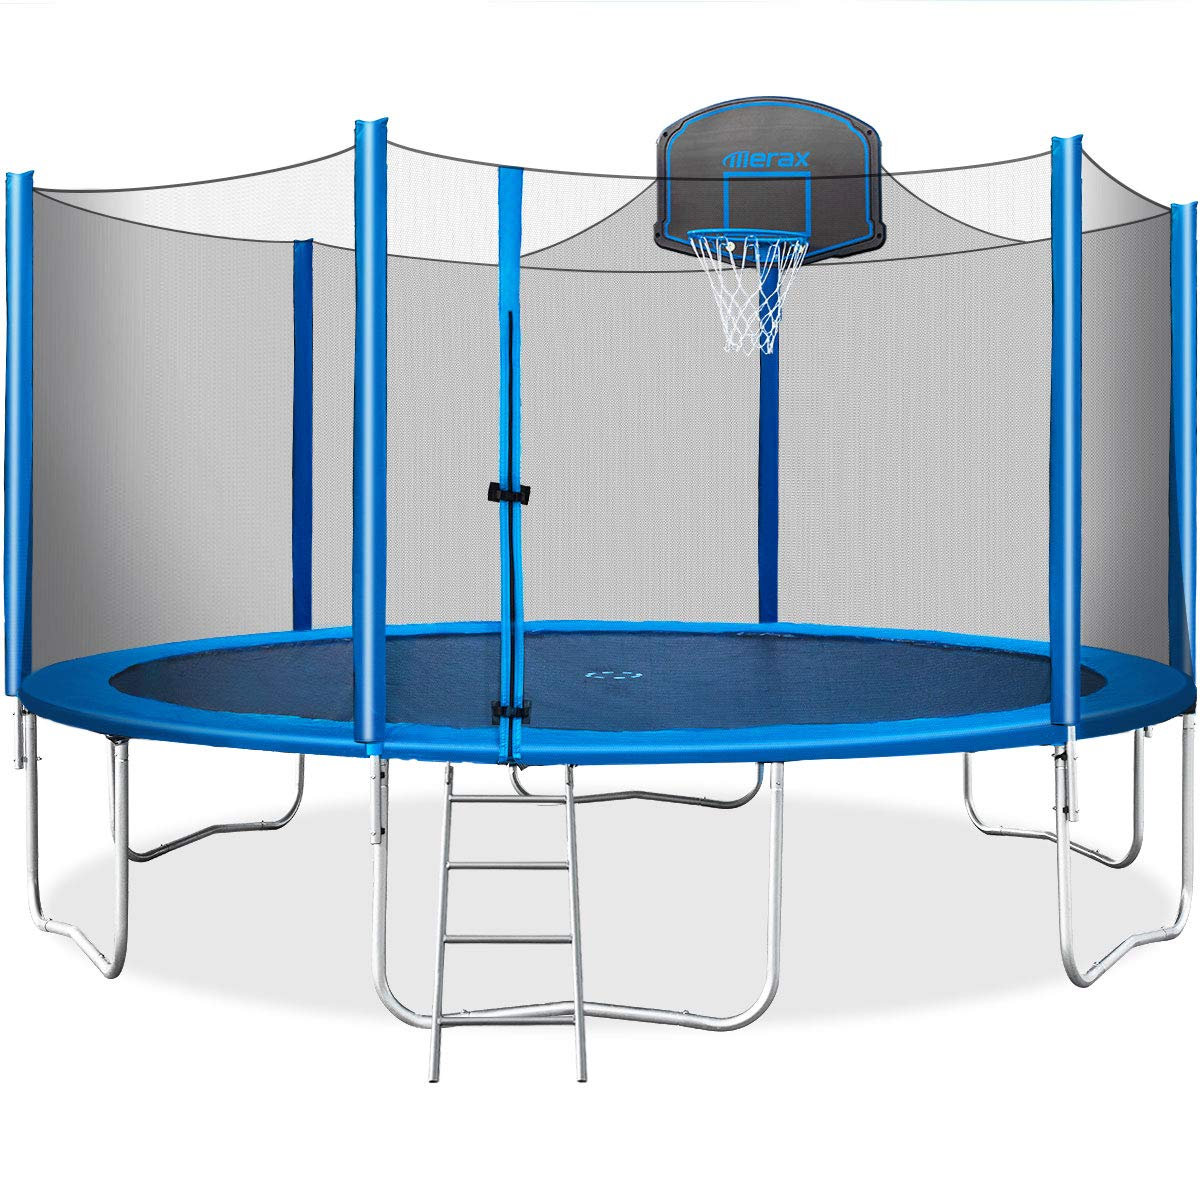 Merax 15 FT Trampoline with Safety Enclosure Net, Basketball Hoop and Ladder - 2019 Upgraded - Kids Basketball Trampoline (Blue) by Merax (Image #1)